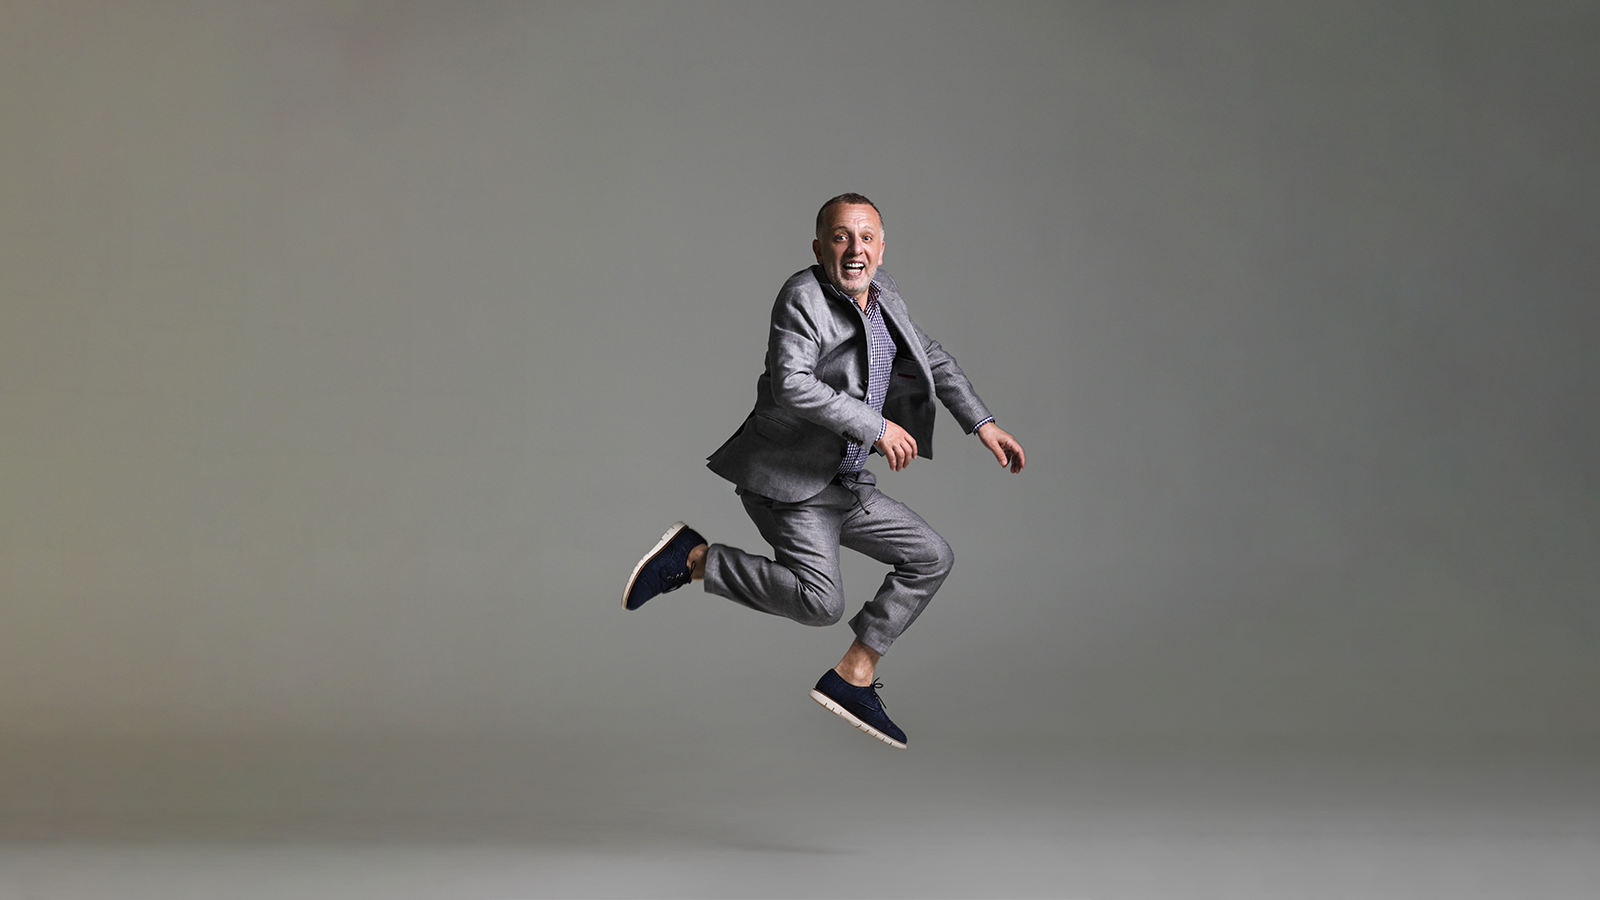 The Art of Jumping over your head